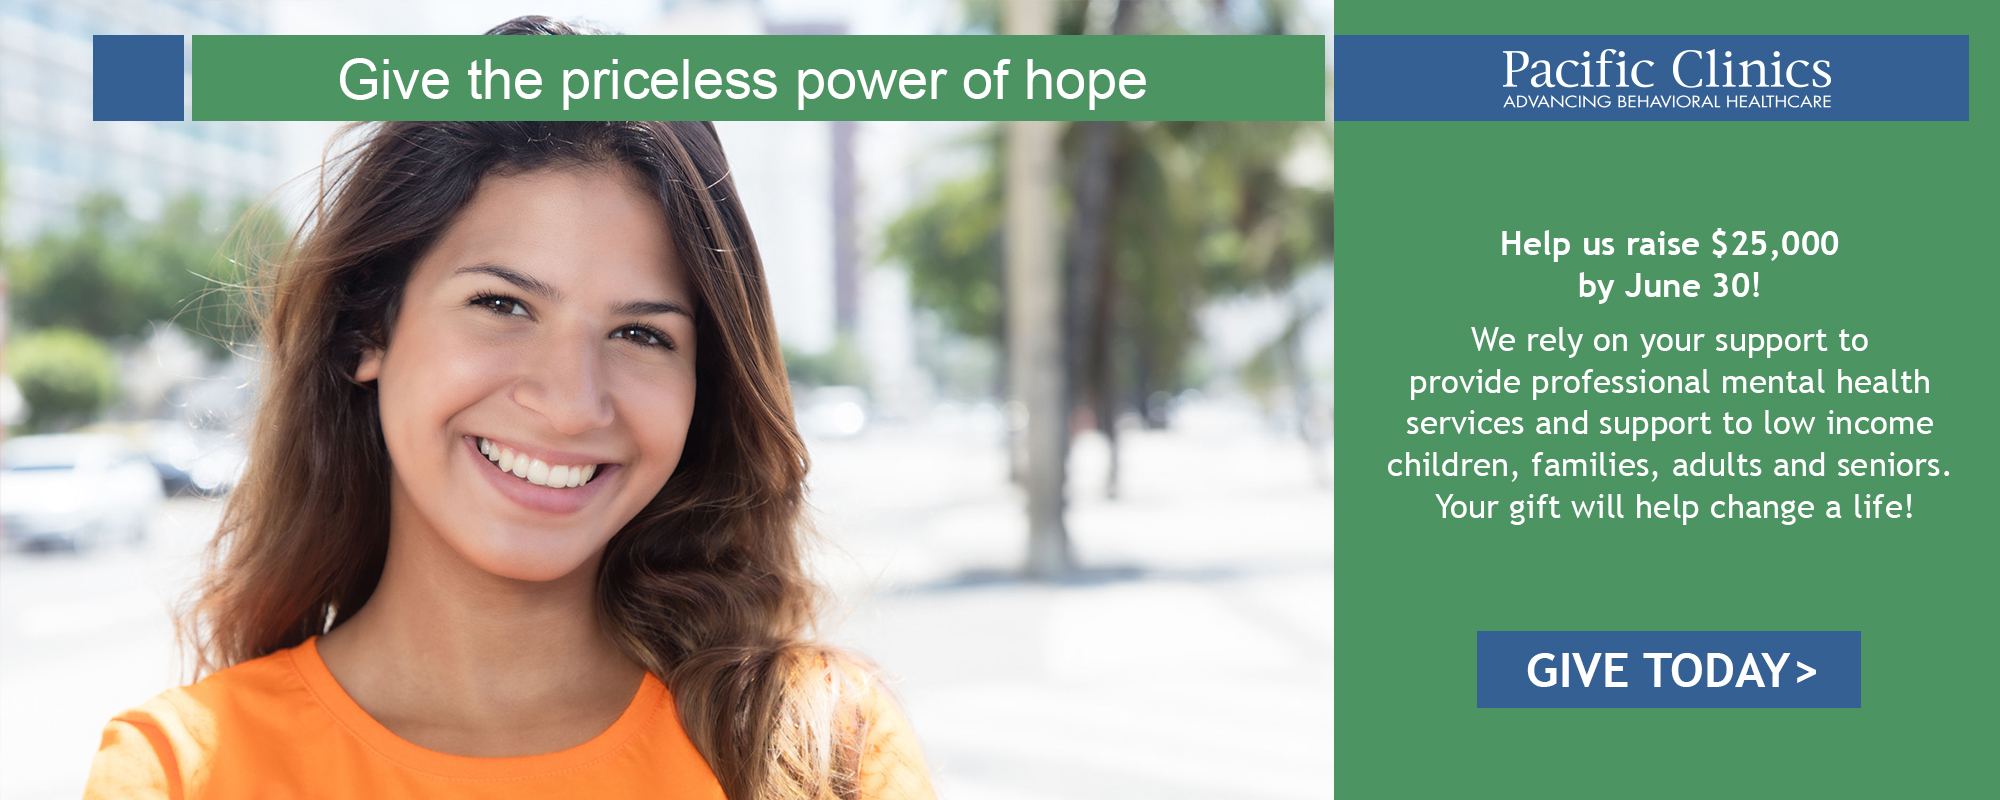 Pacific Clinics - Give The Priceless Power Of Hope